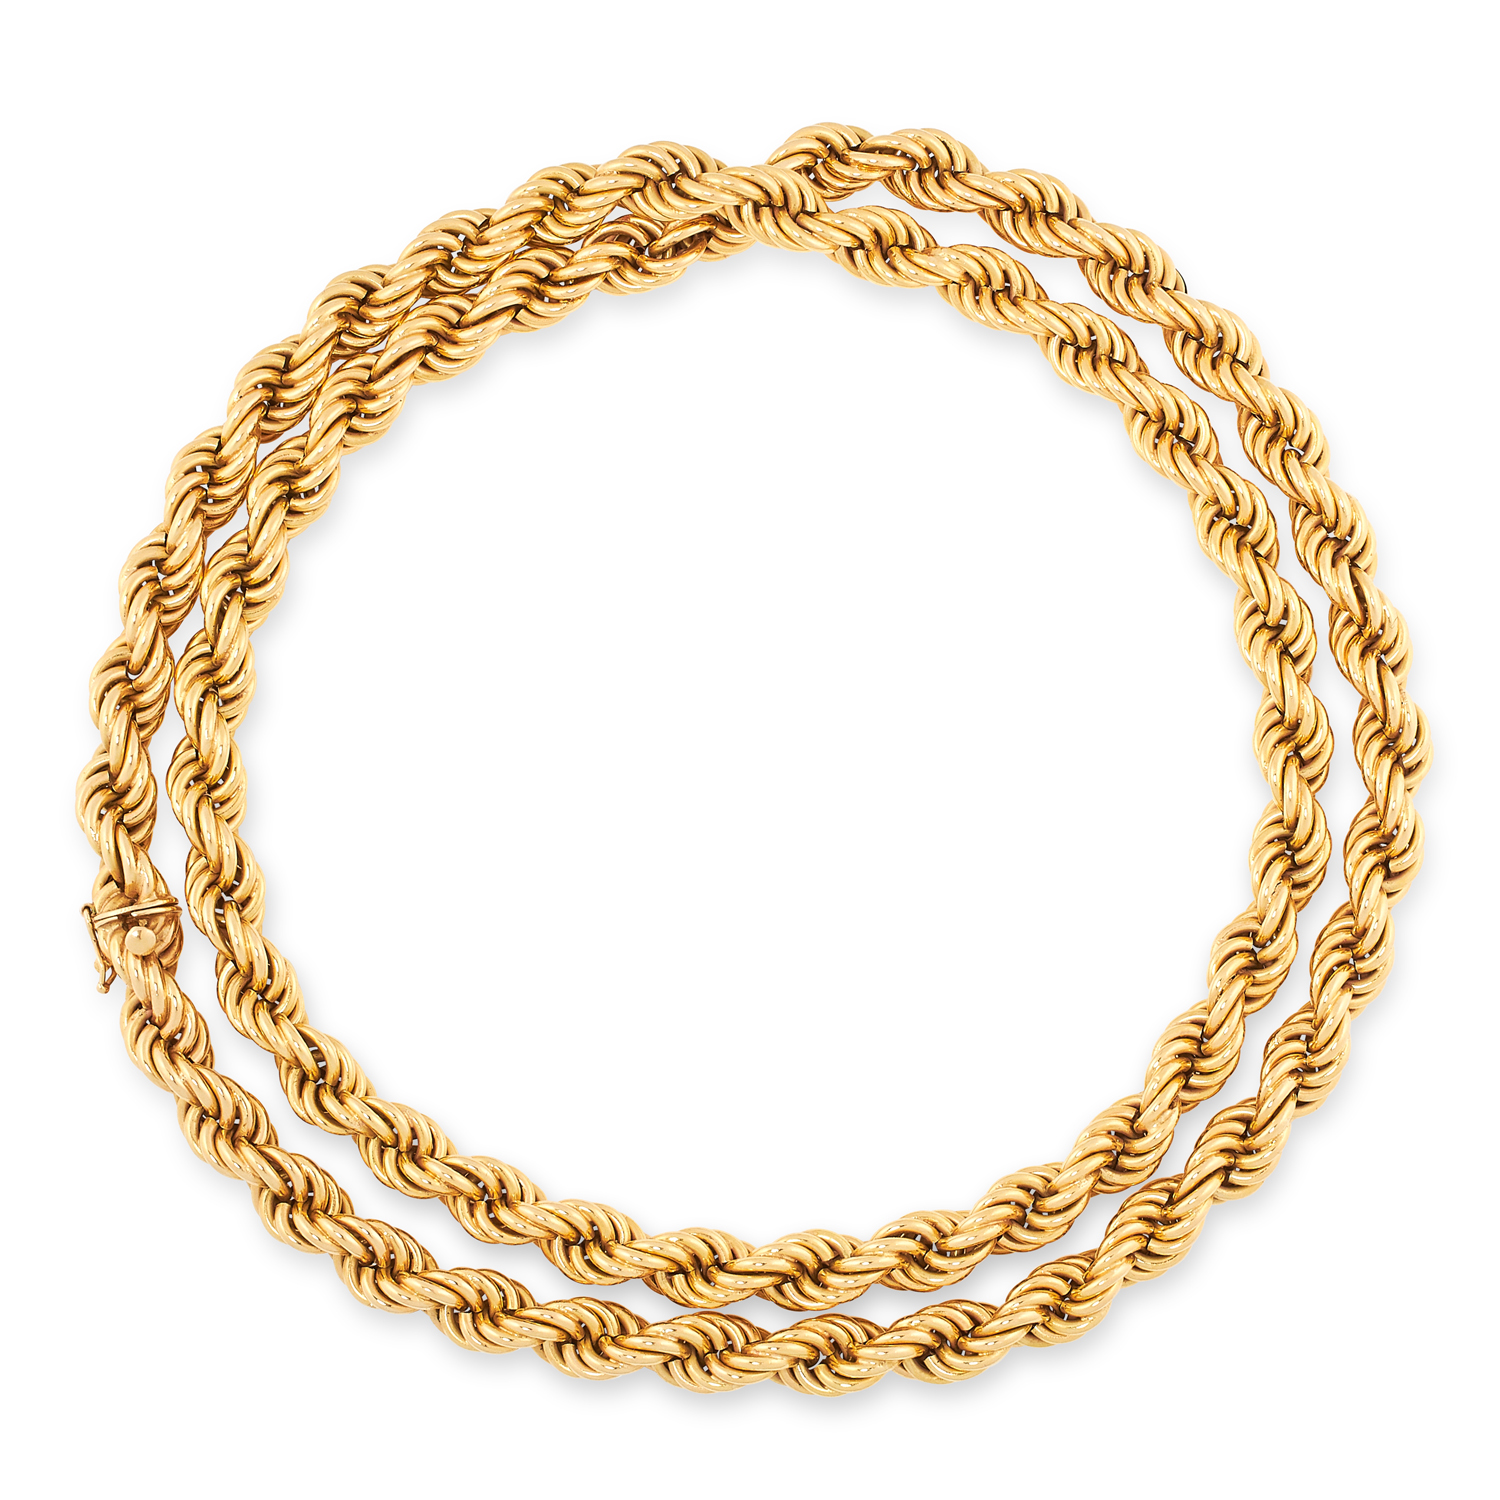 A VINTAGE ROPE TWIST CHAIN NECKLACE designed as interlocking links designed as a twisted rope, tests